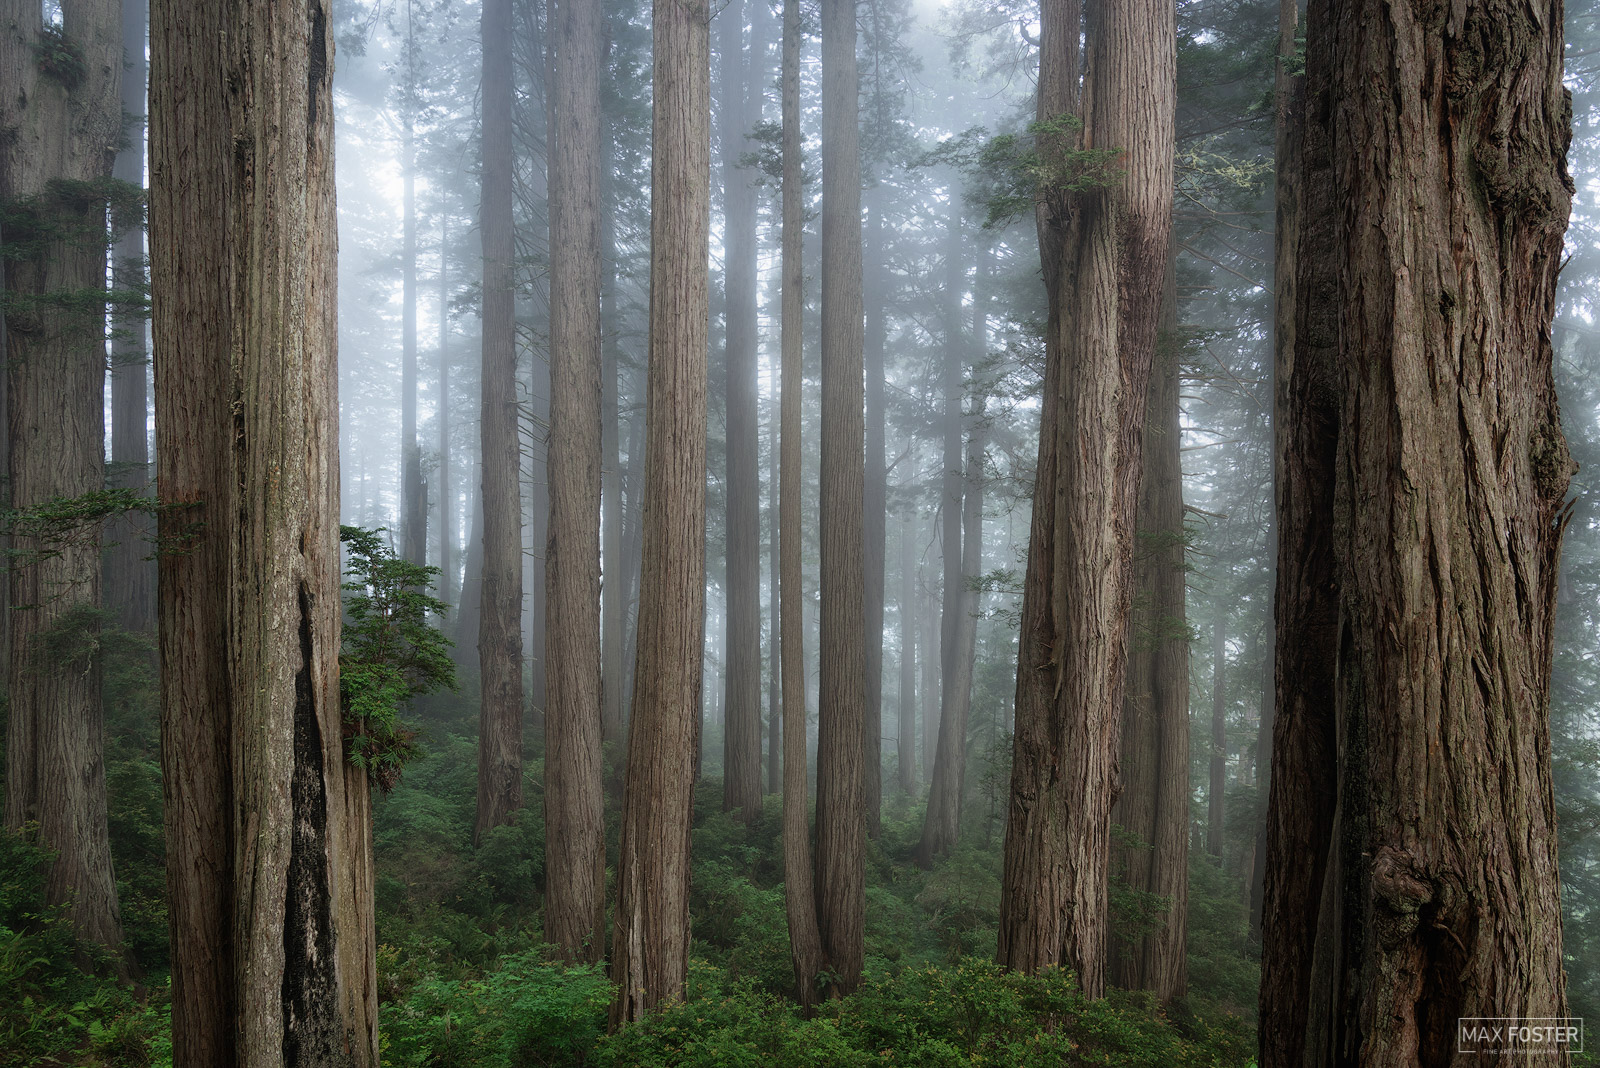 Fine Art Limited Edition of 50 In 1850, old-growth redwood forest covered more than 2,000,000 acres of the California coast....